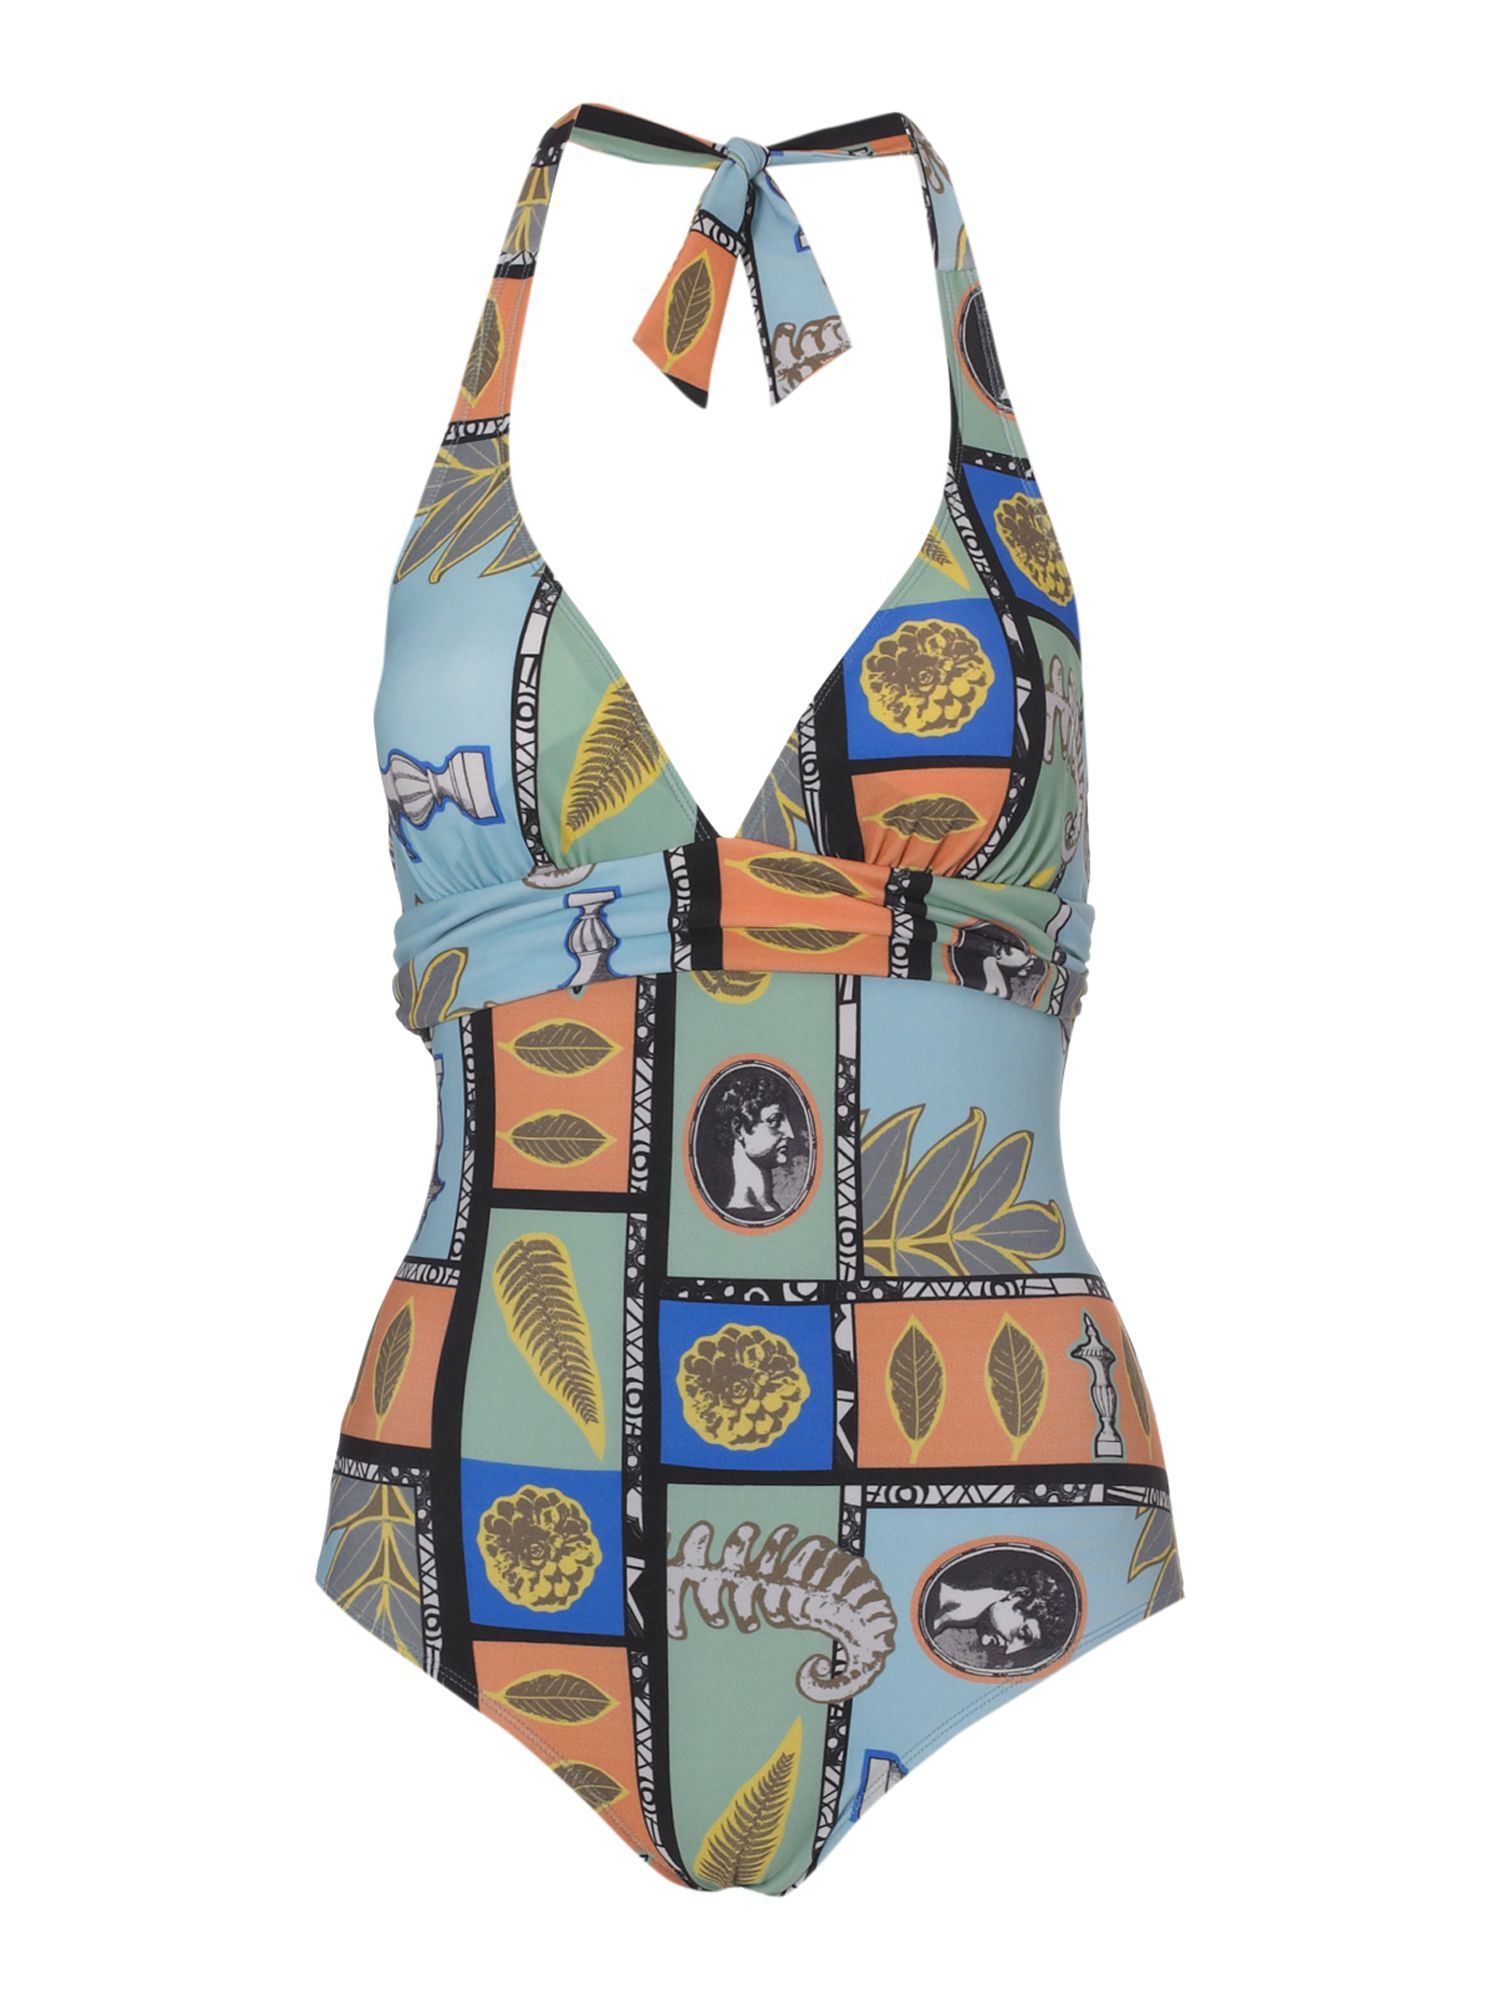 Timney Collage print swimsuit - Multi-Coloured product image